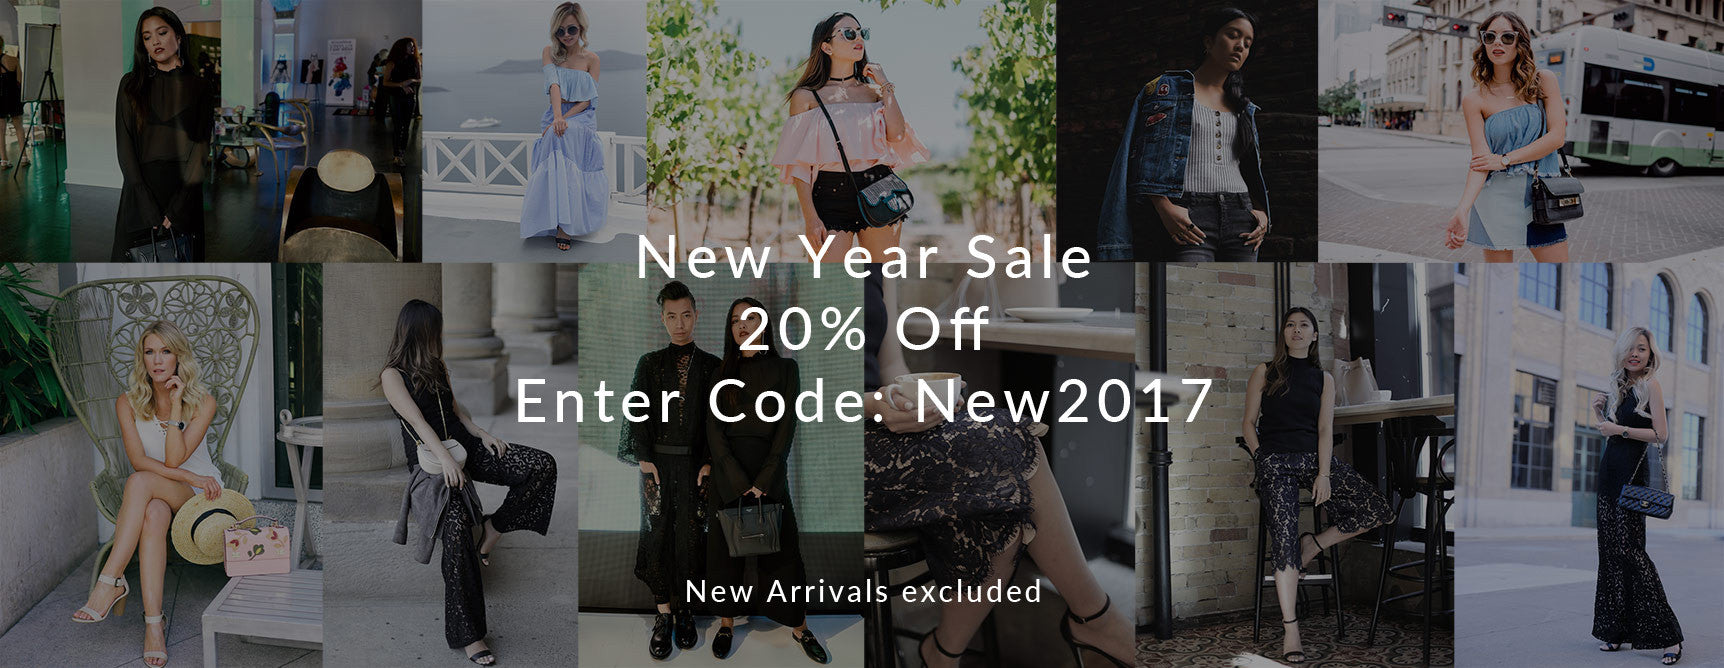 New Year Sale - 20% OFF